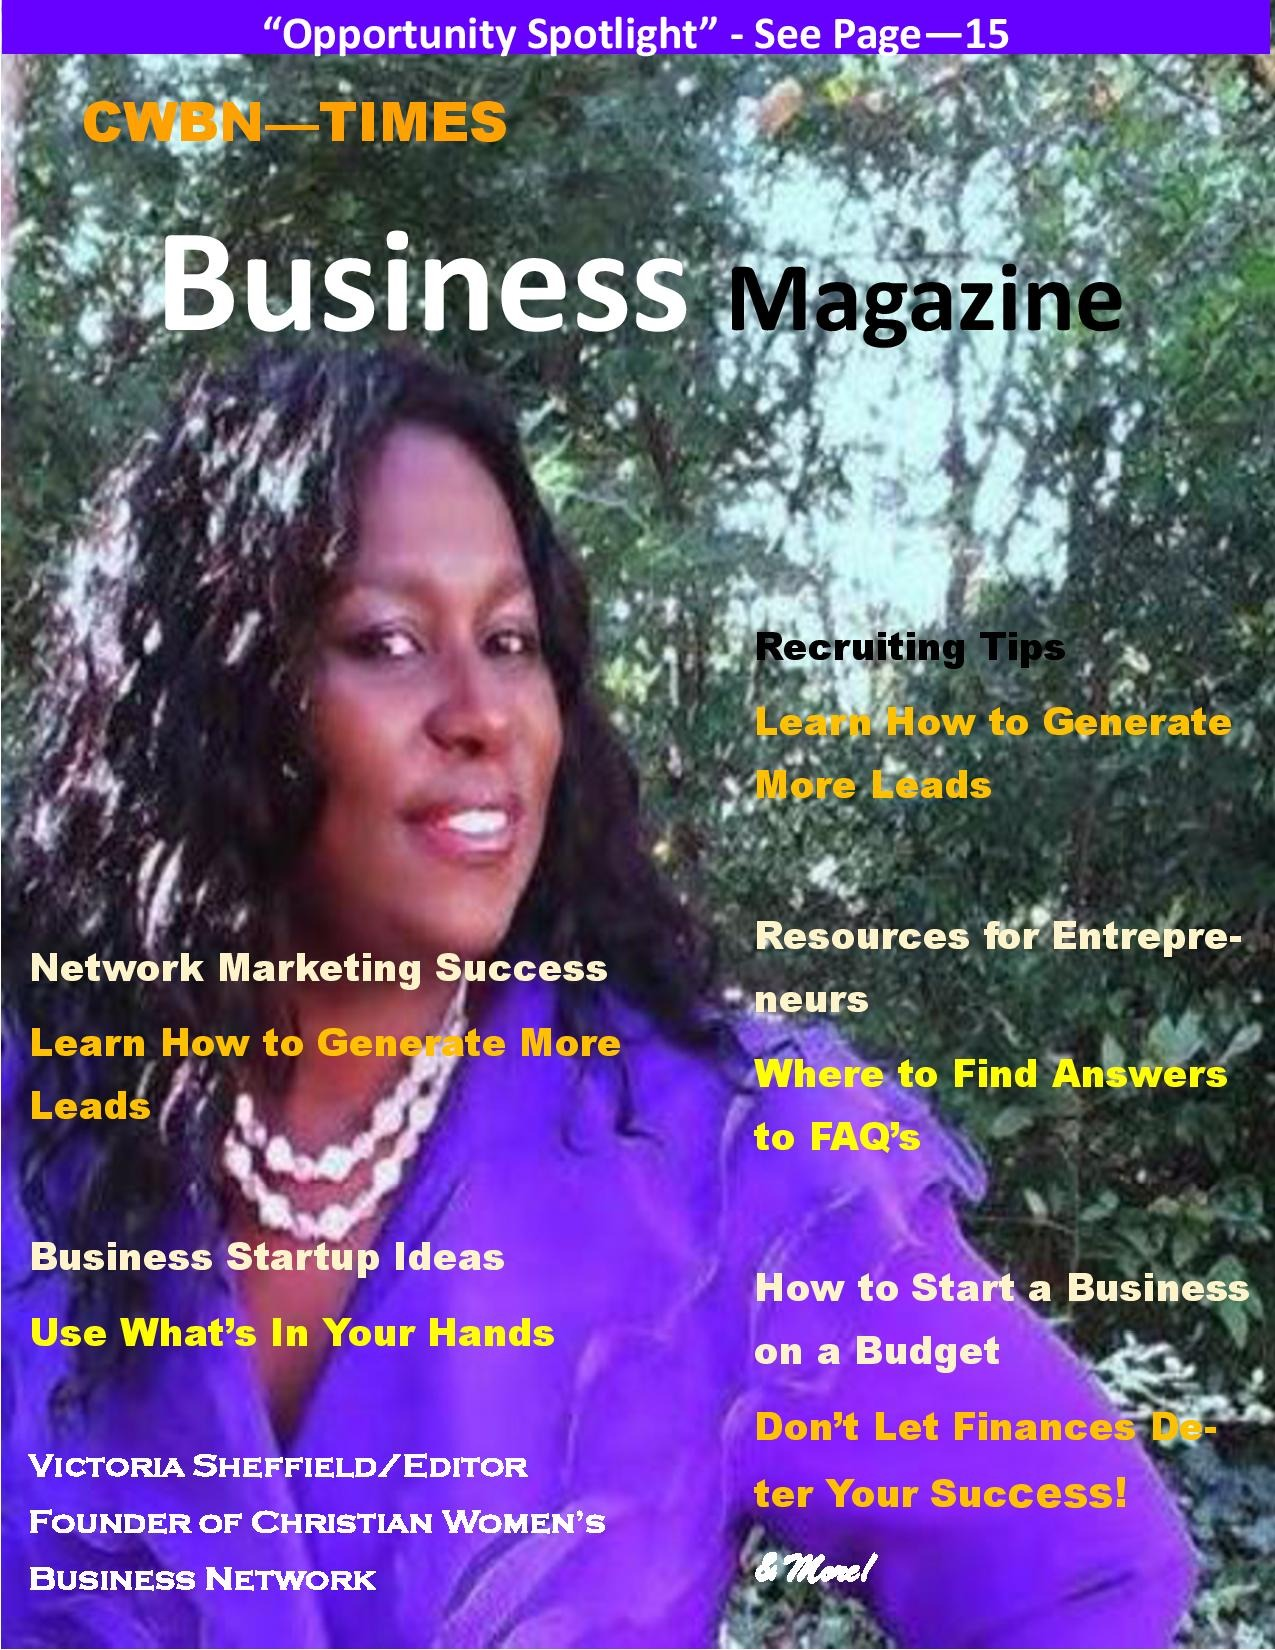 CWBN Times Business Magazine